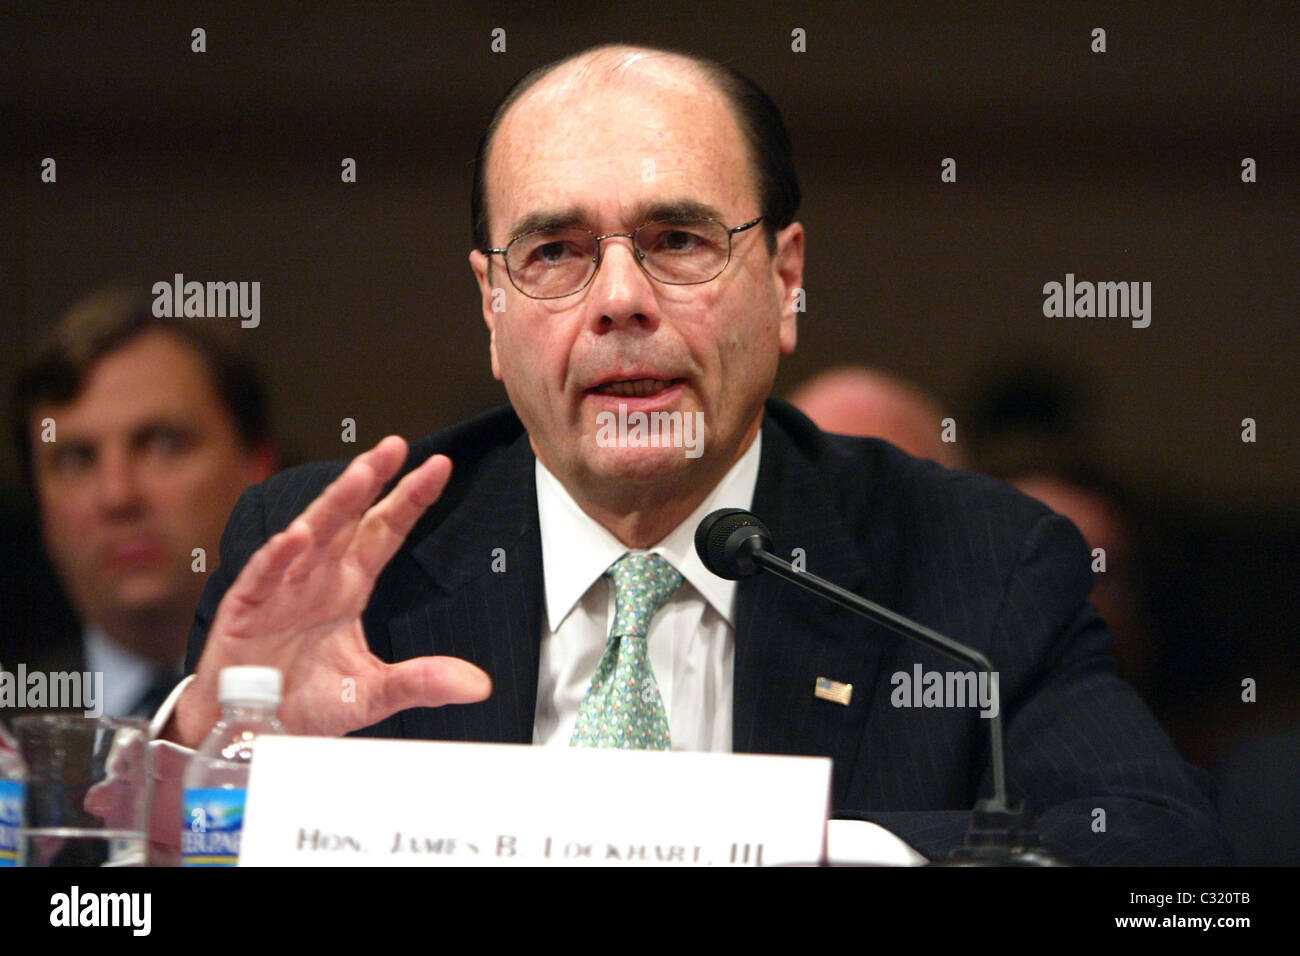 Director of the Federal Housing Finance Agency James B